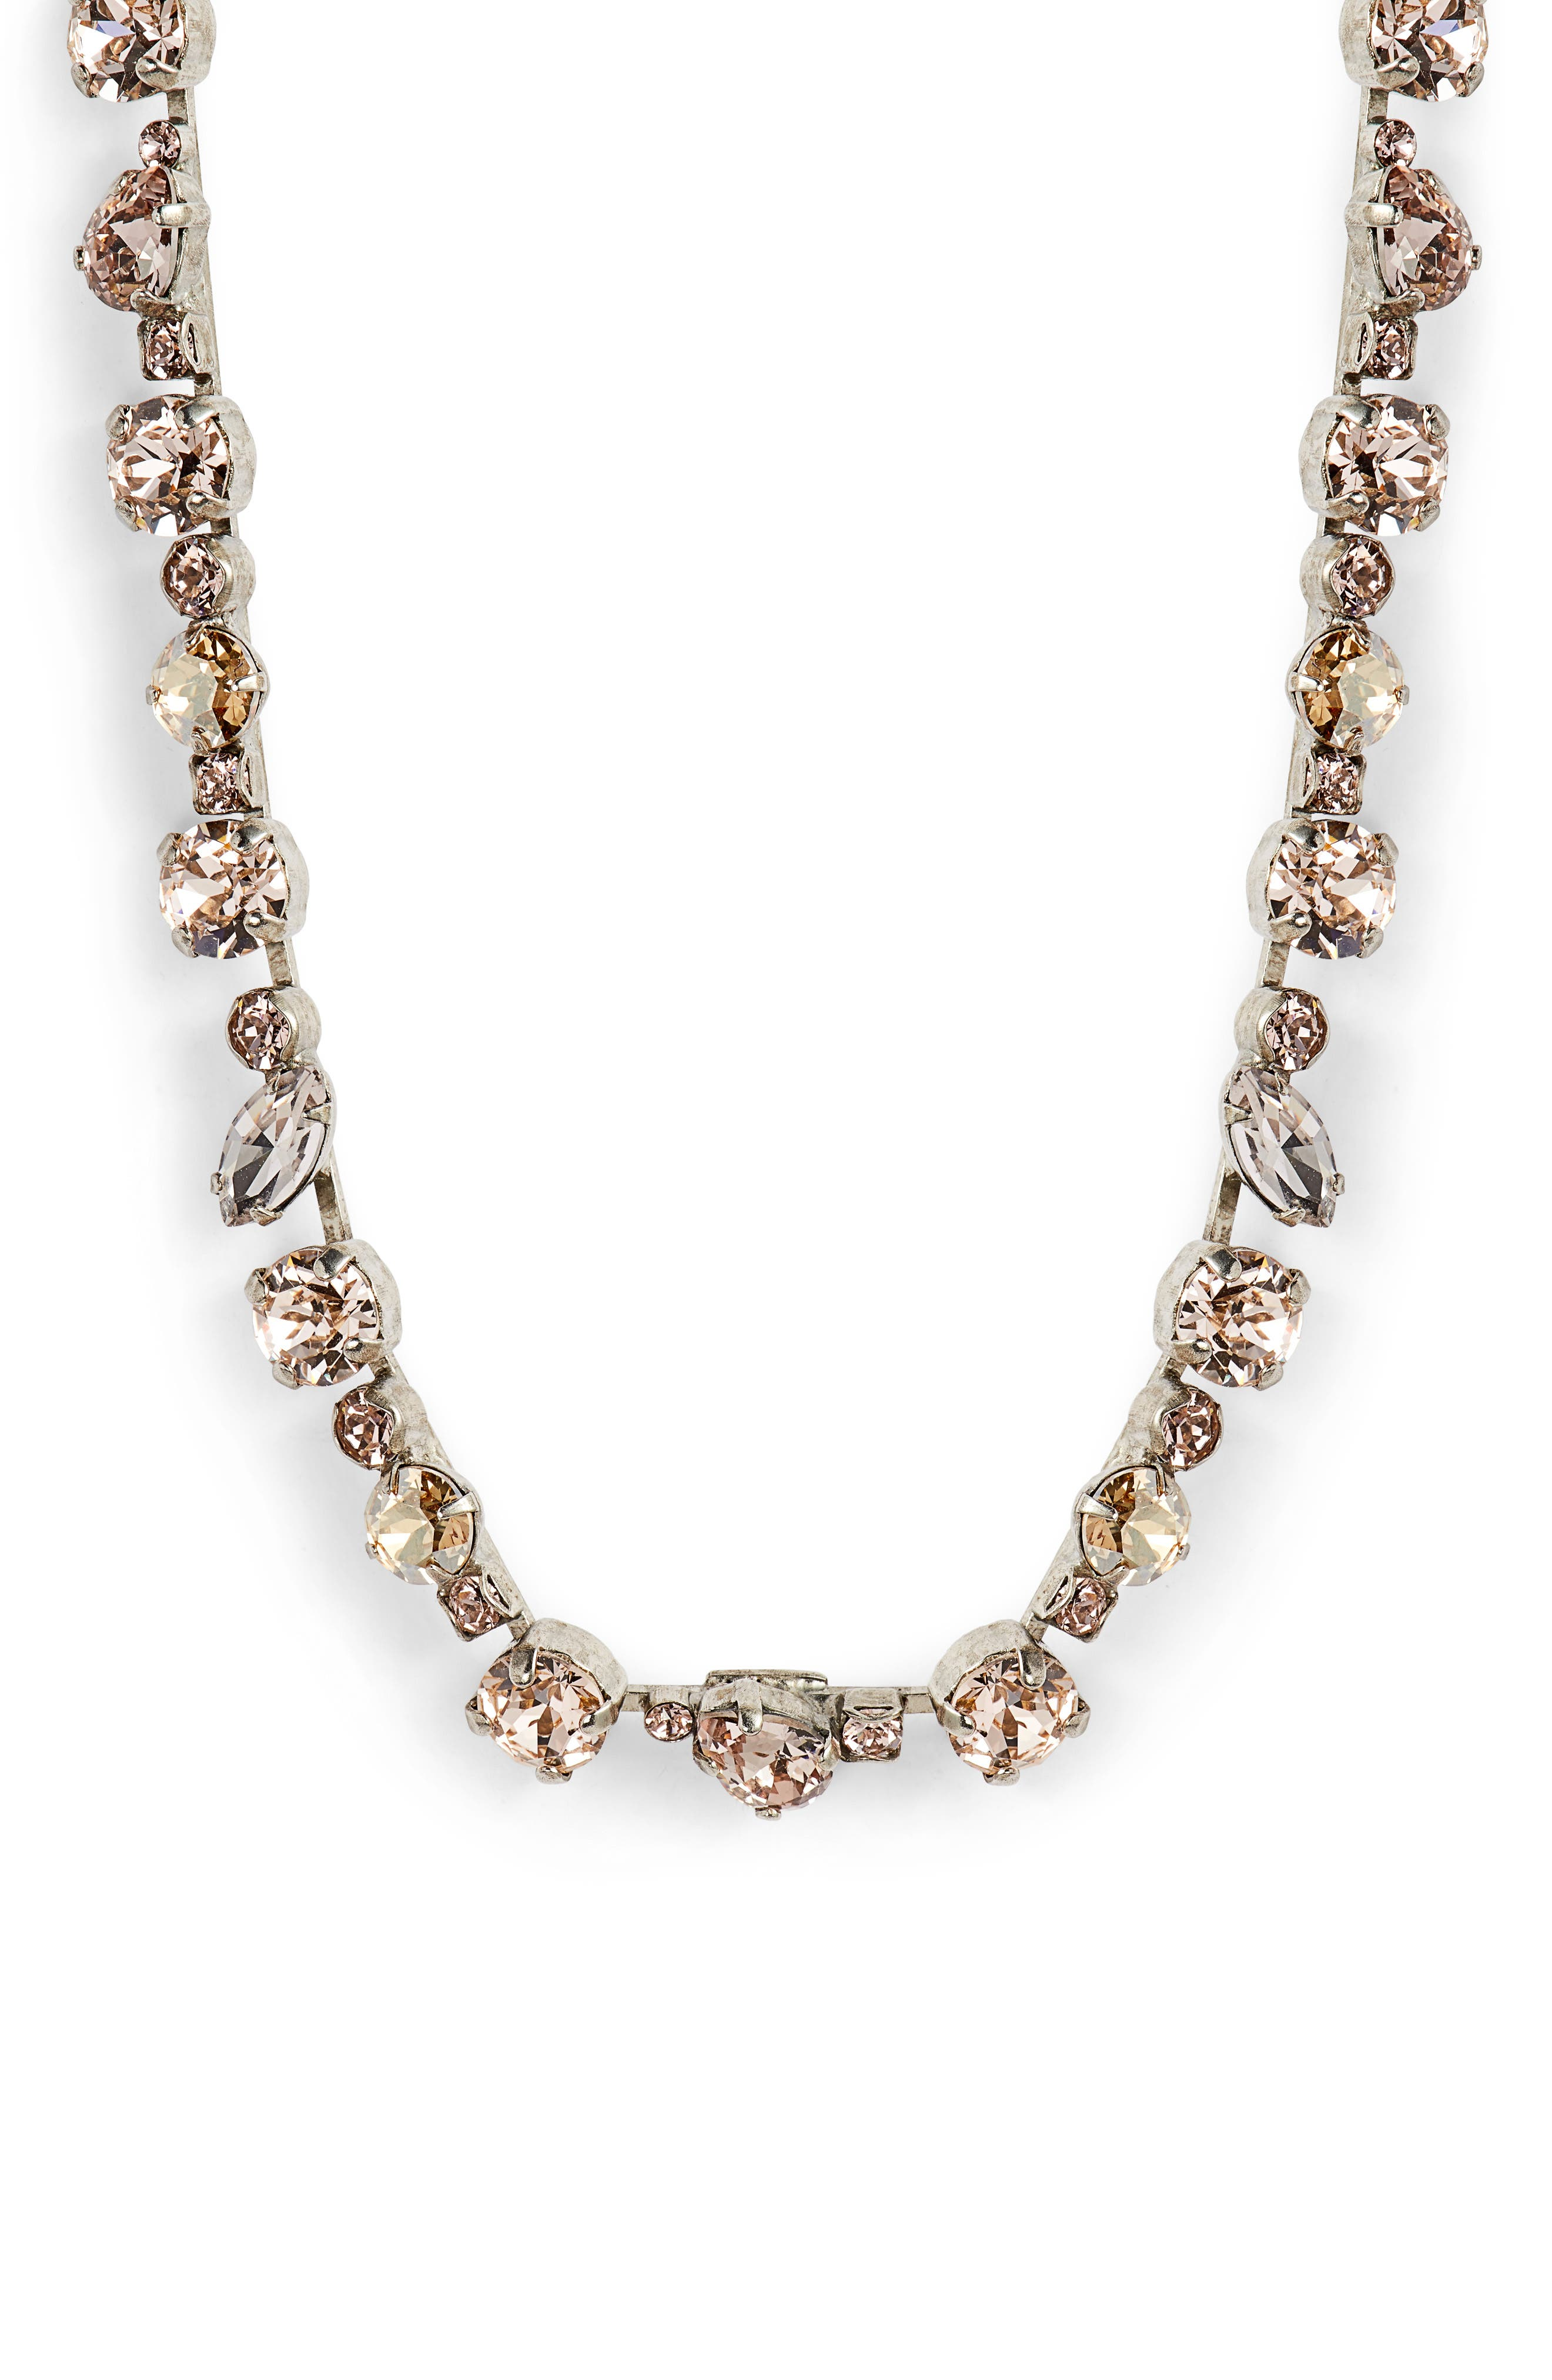 Crystal Collective Necklace,                             Main thumbnail 1, color,                             650